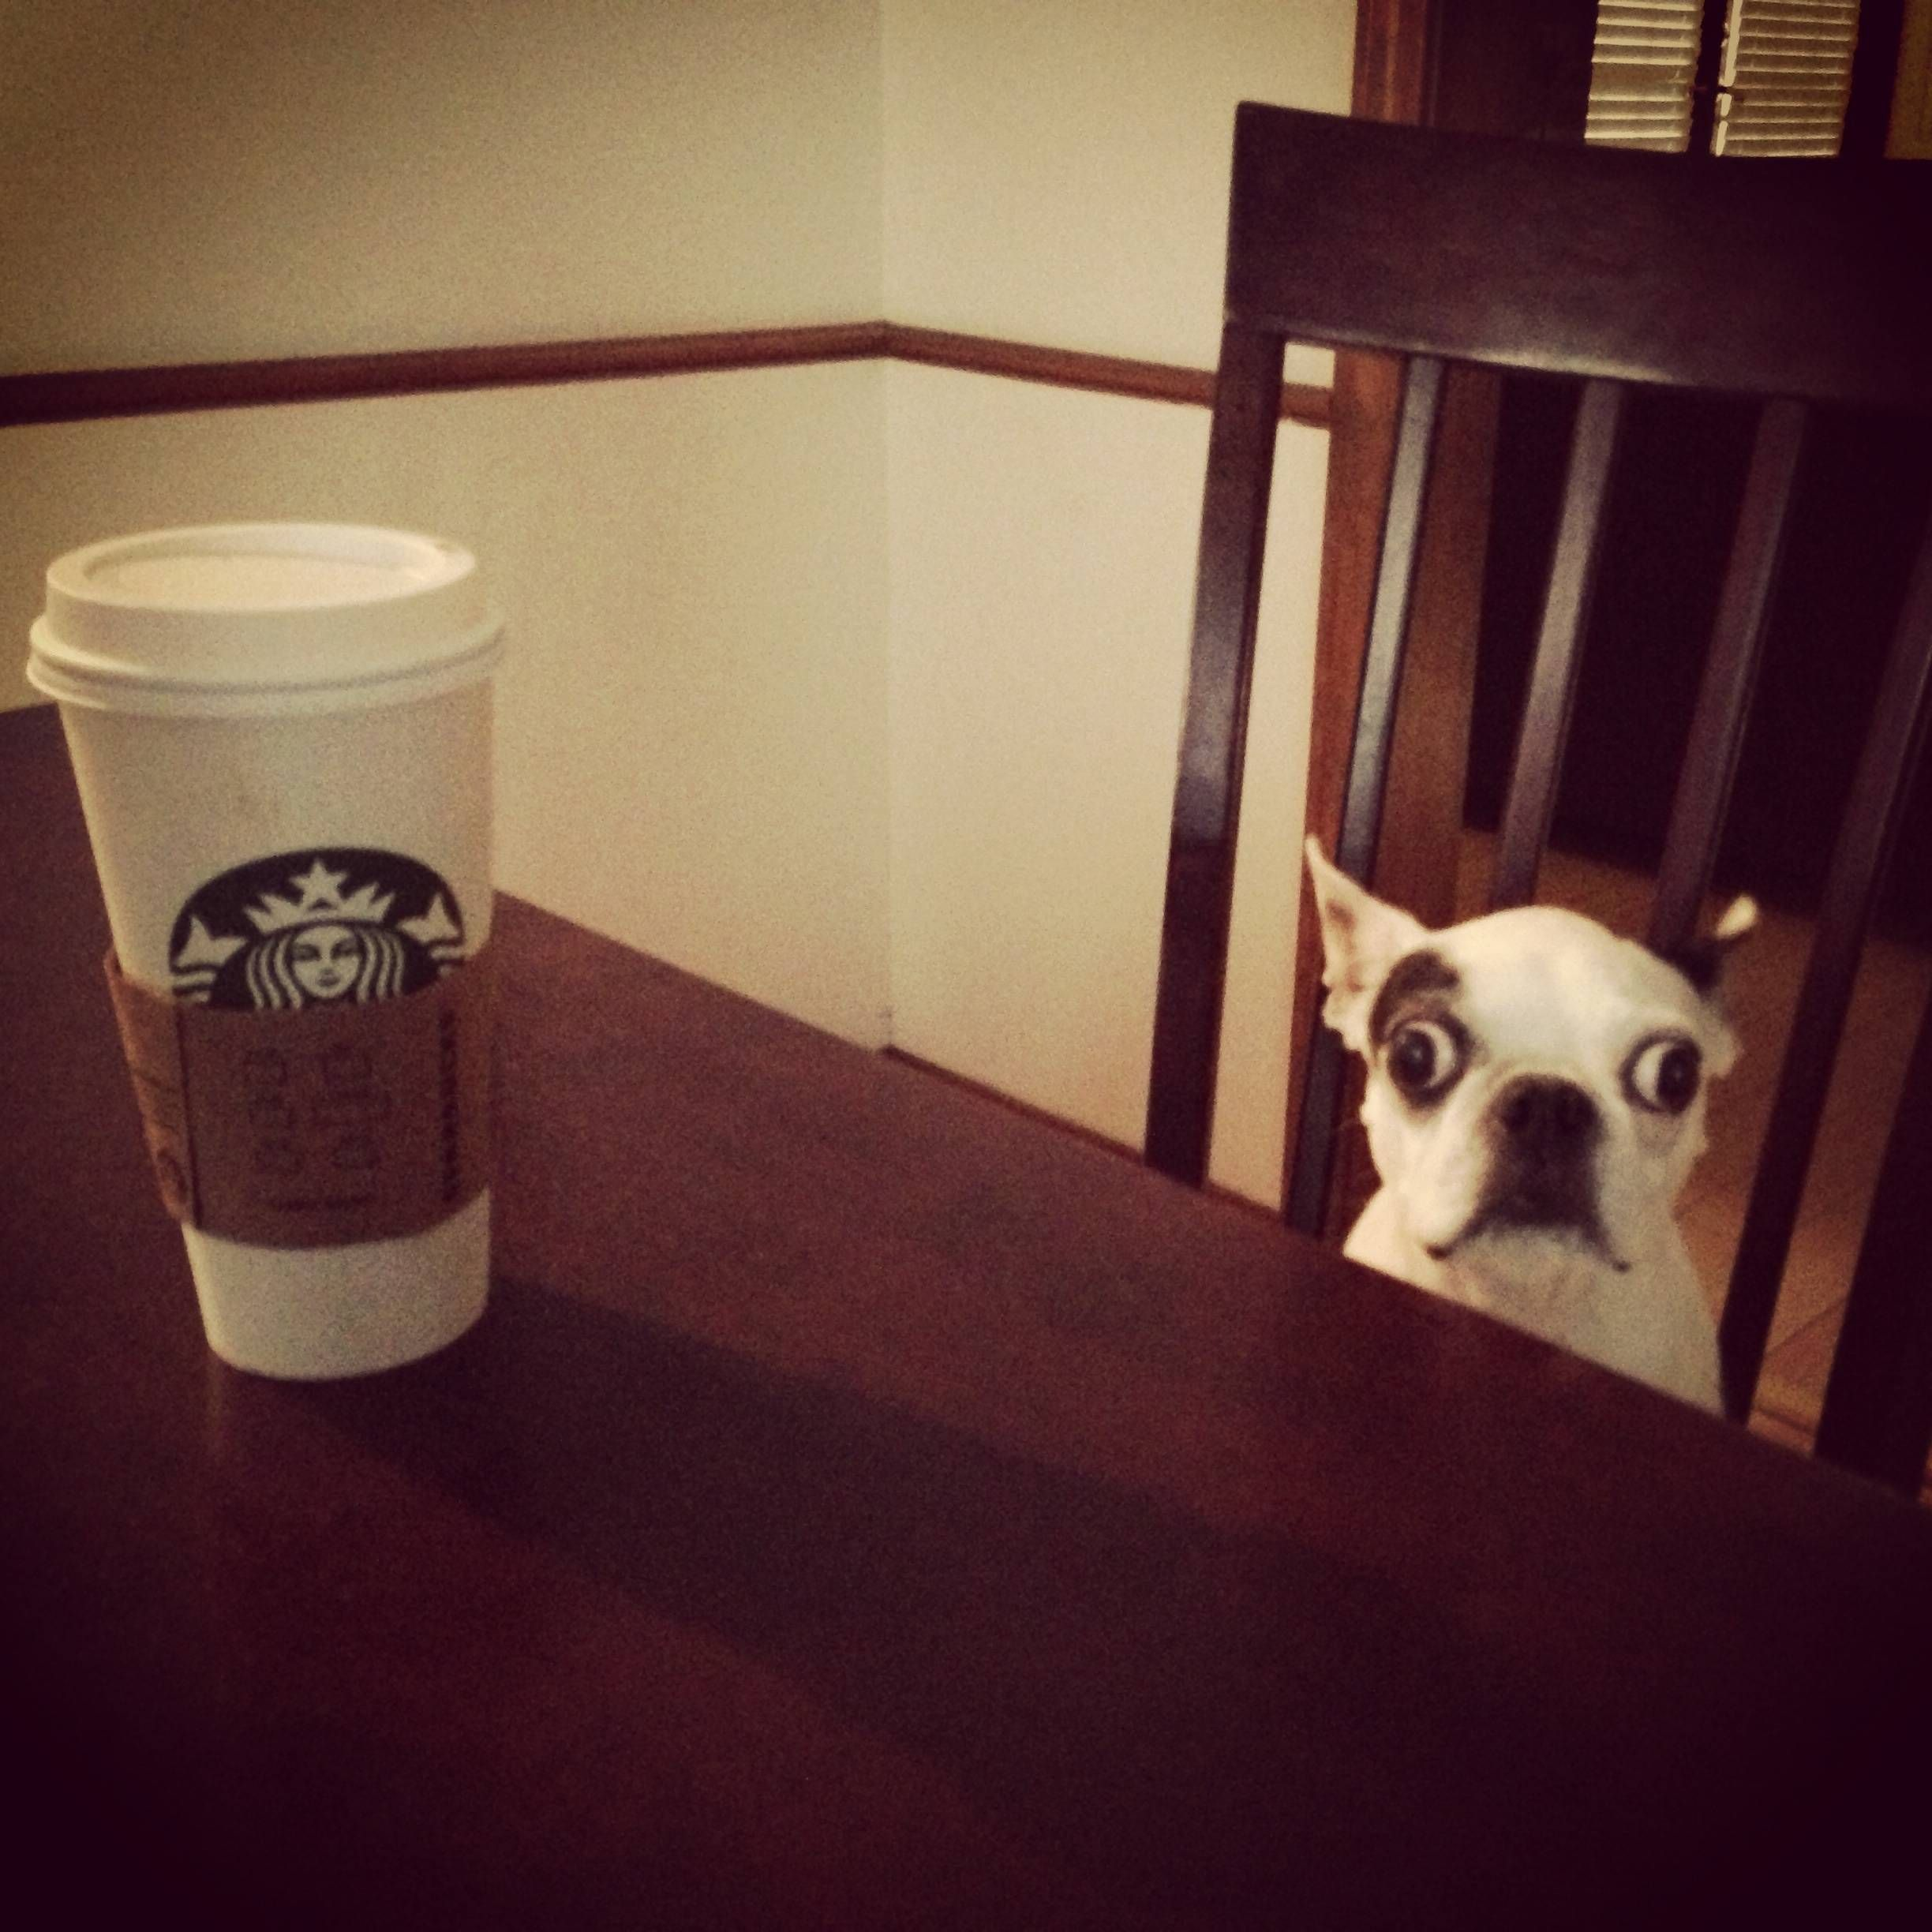 My Dog Wanted To Sit Down For Some Coffee This Morning Looks Like She Drank Too Much Coffee Humor Coffee Photos Pugs Funny